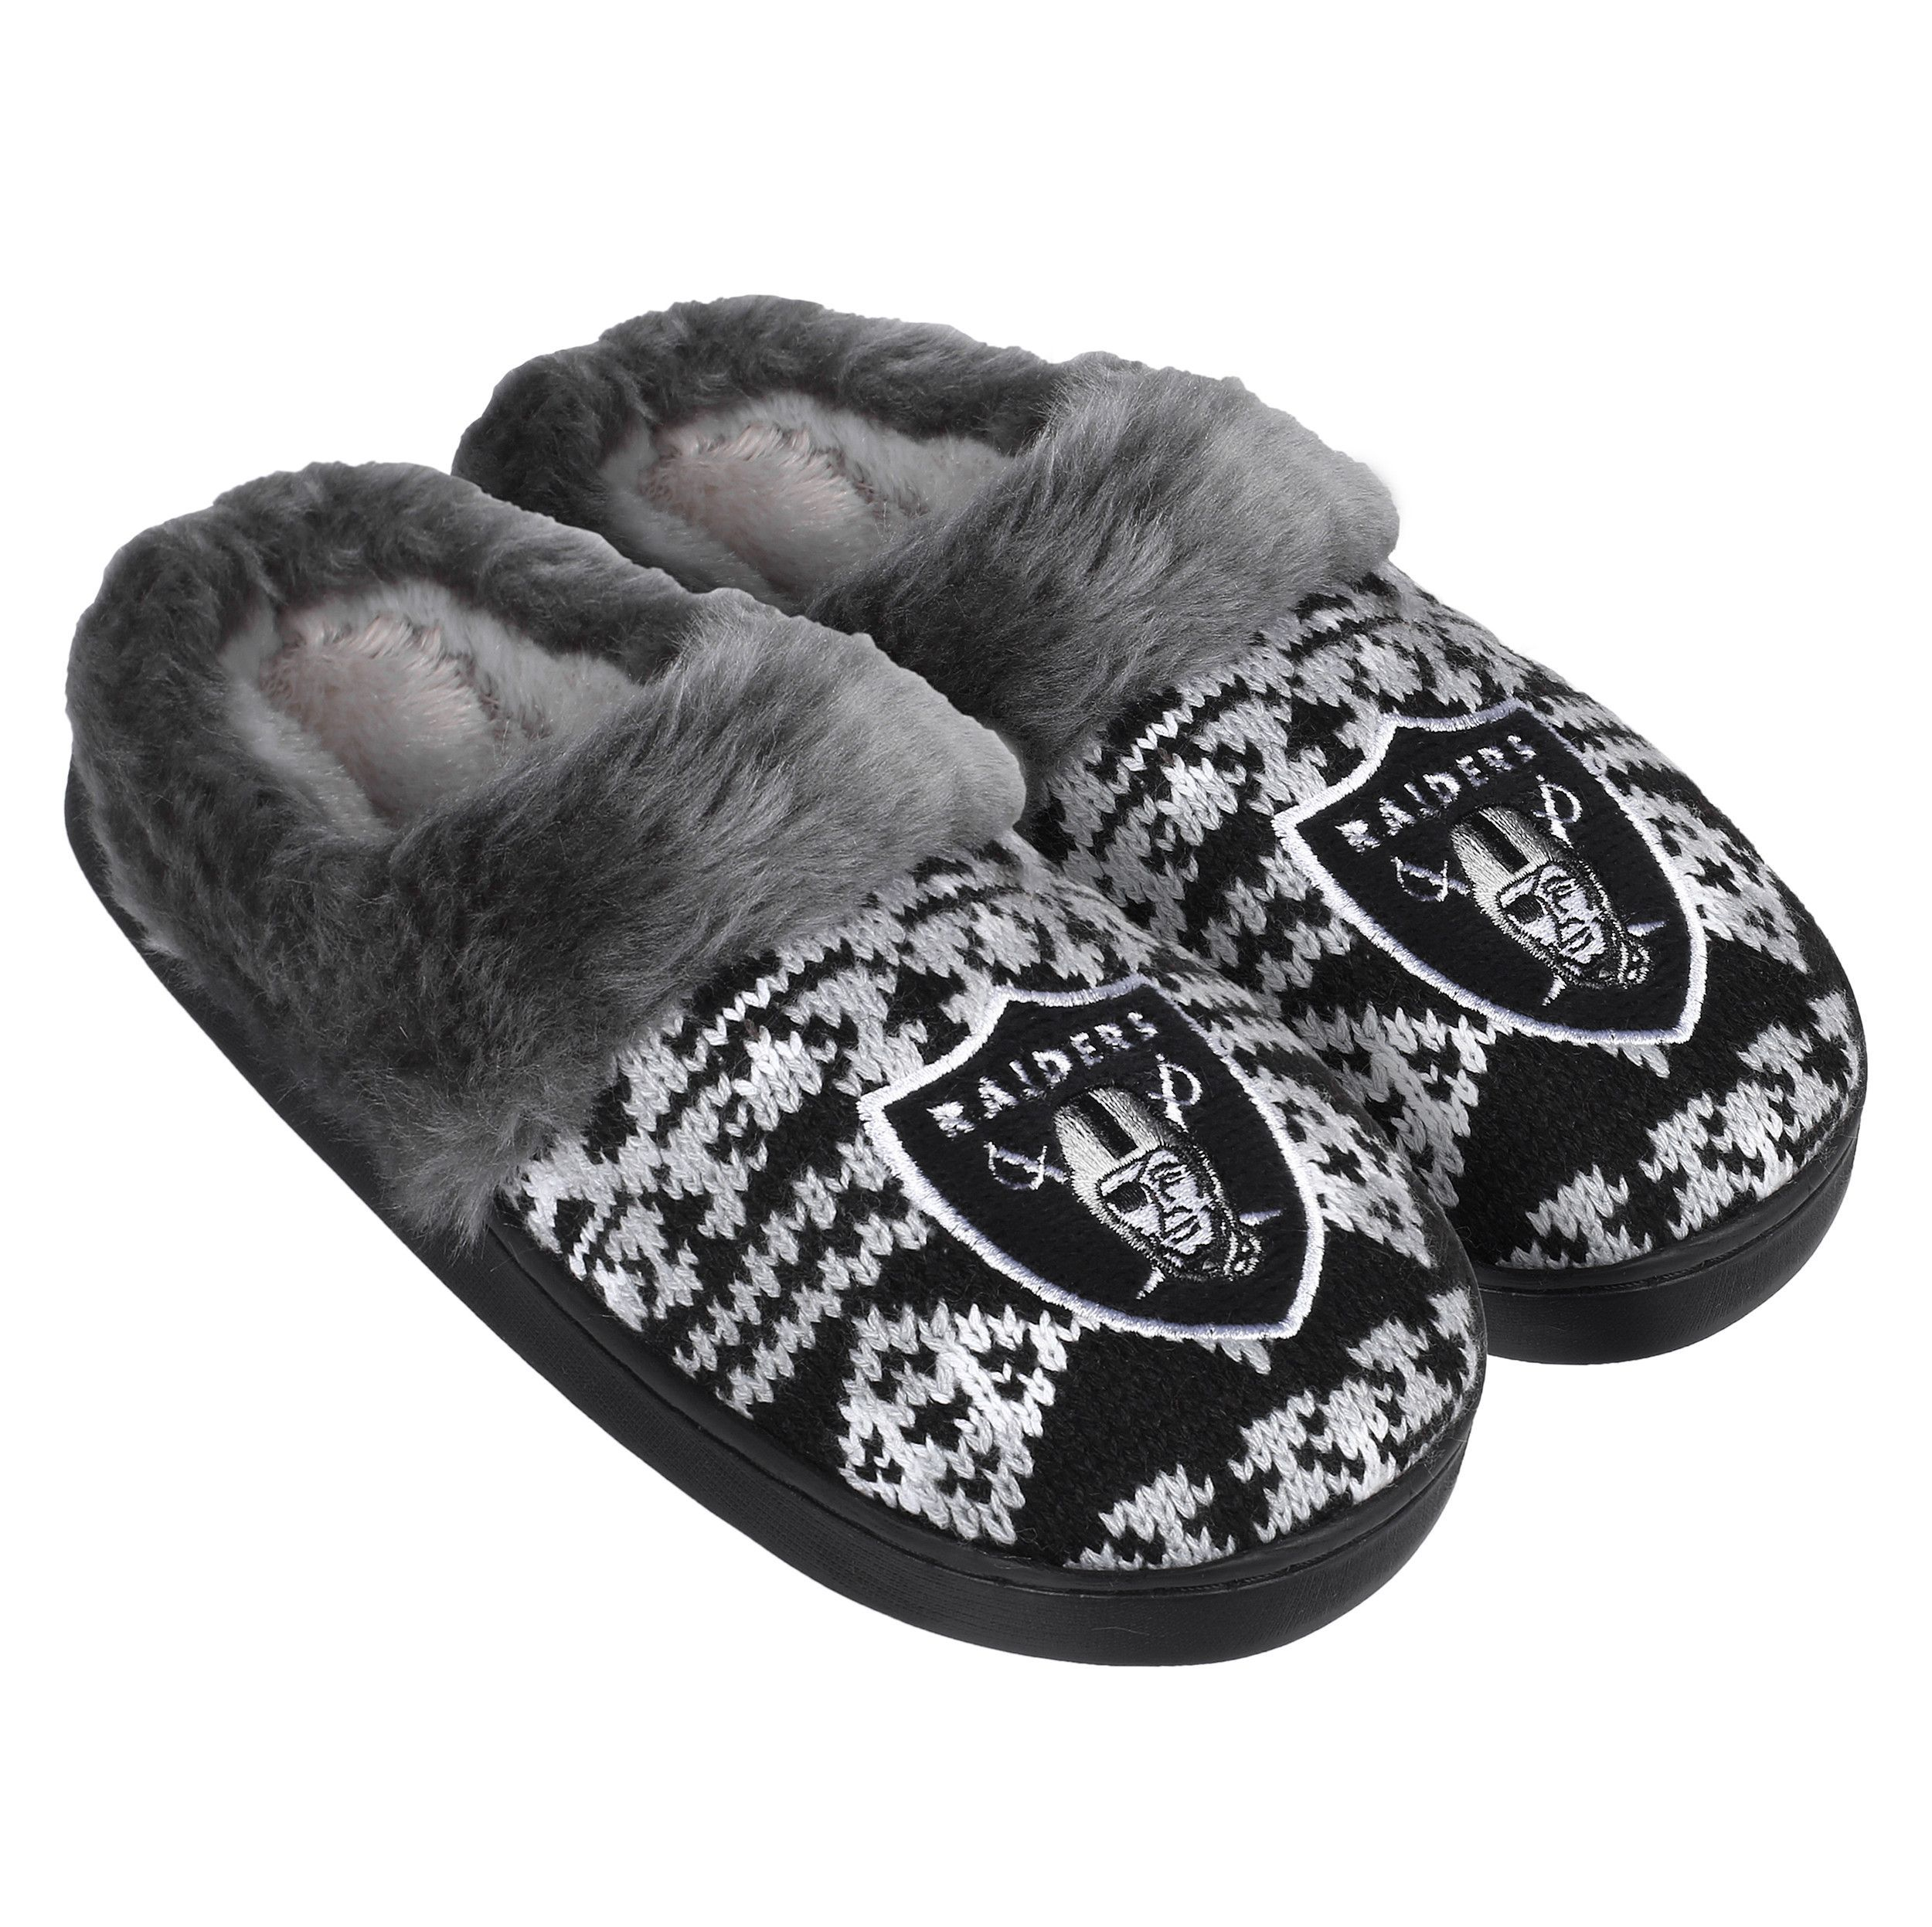 24cca480b11 Oakland Raiders Women s Aztec Slide Slipper - 12pc Case